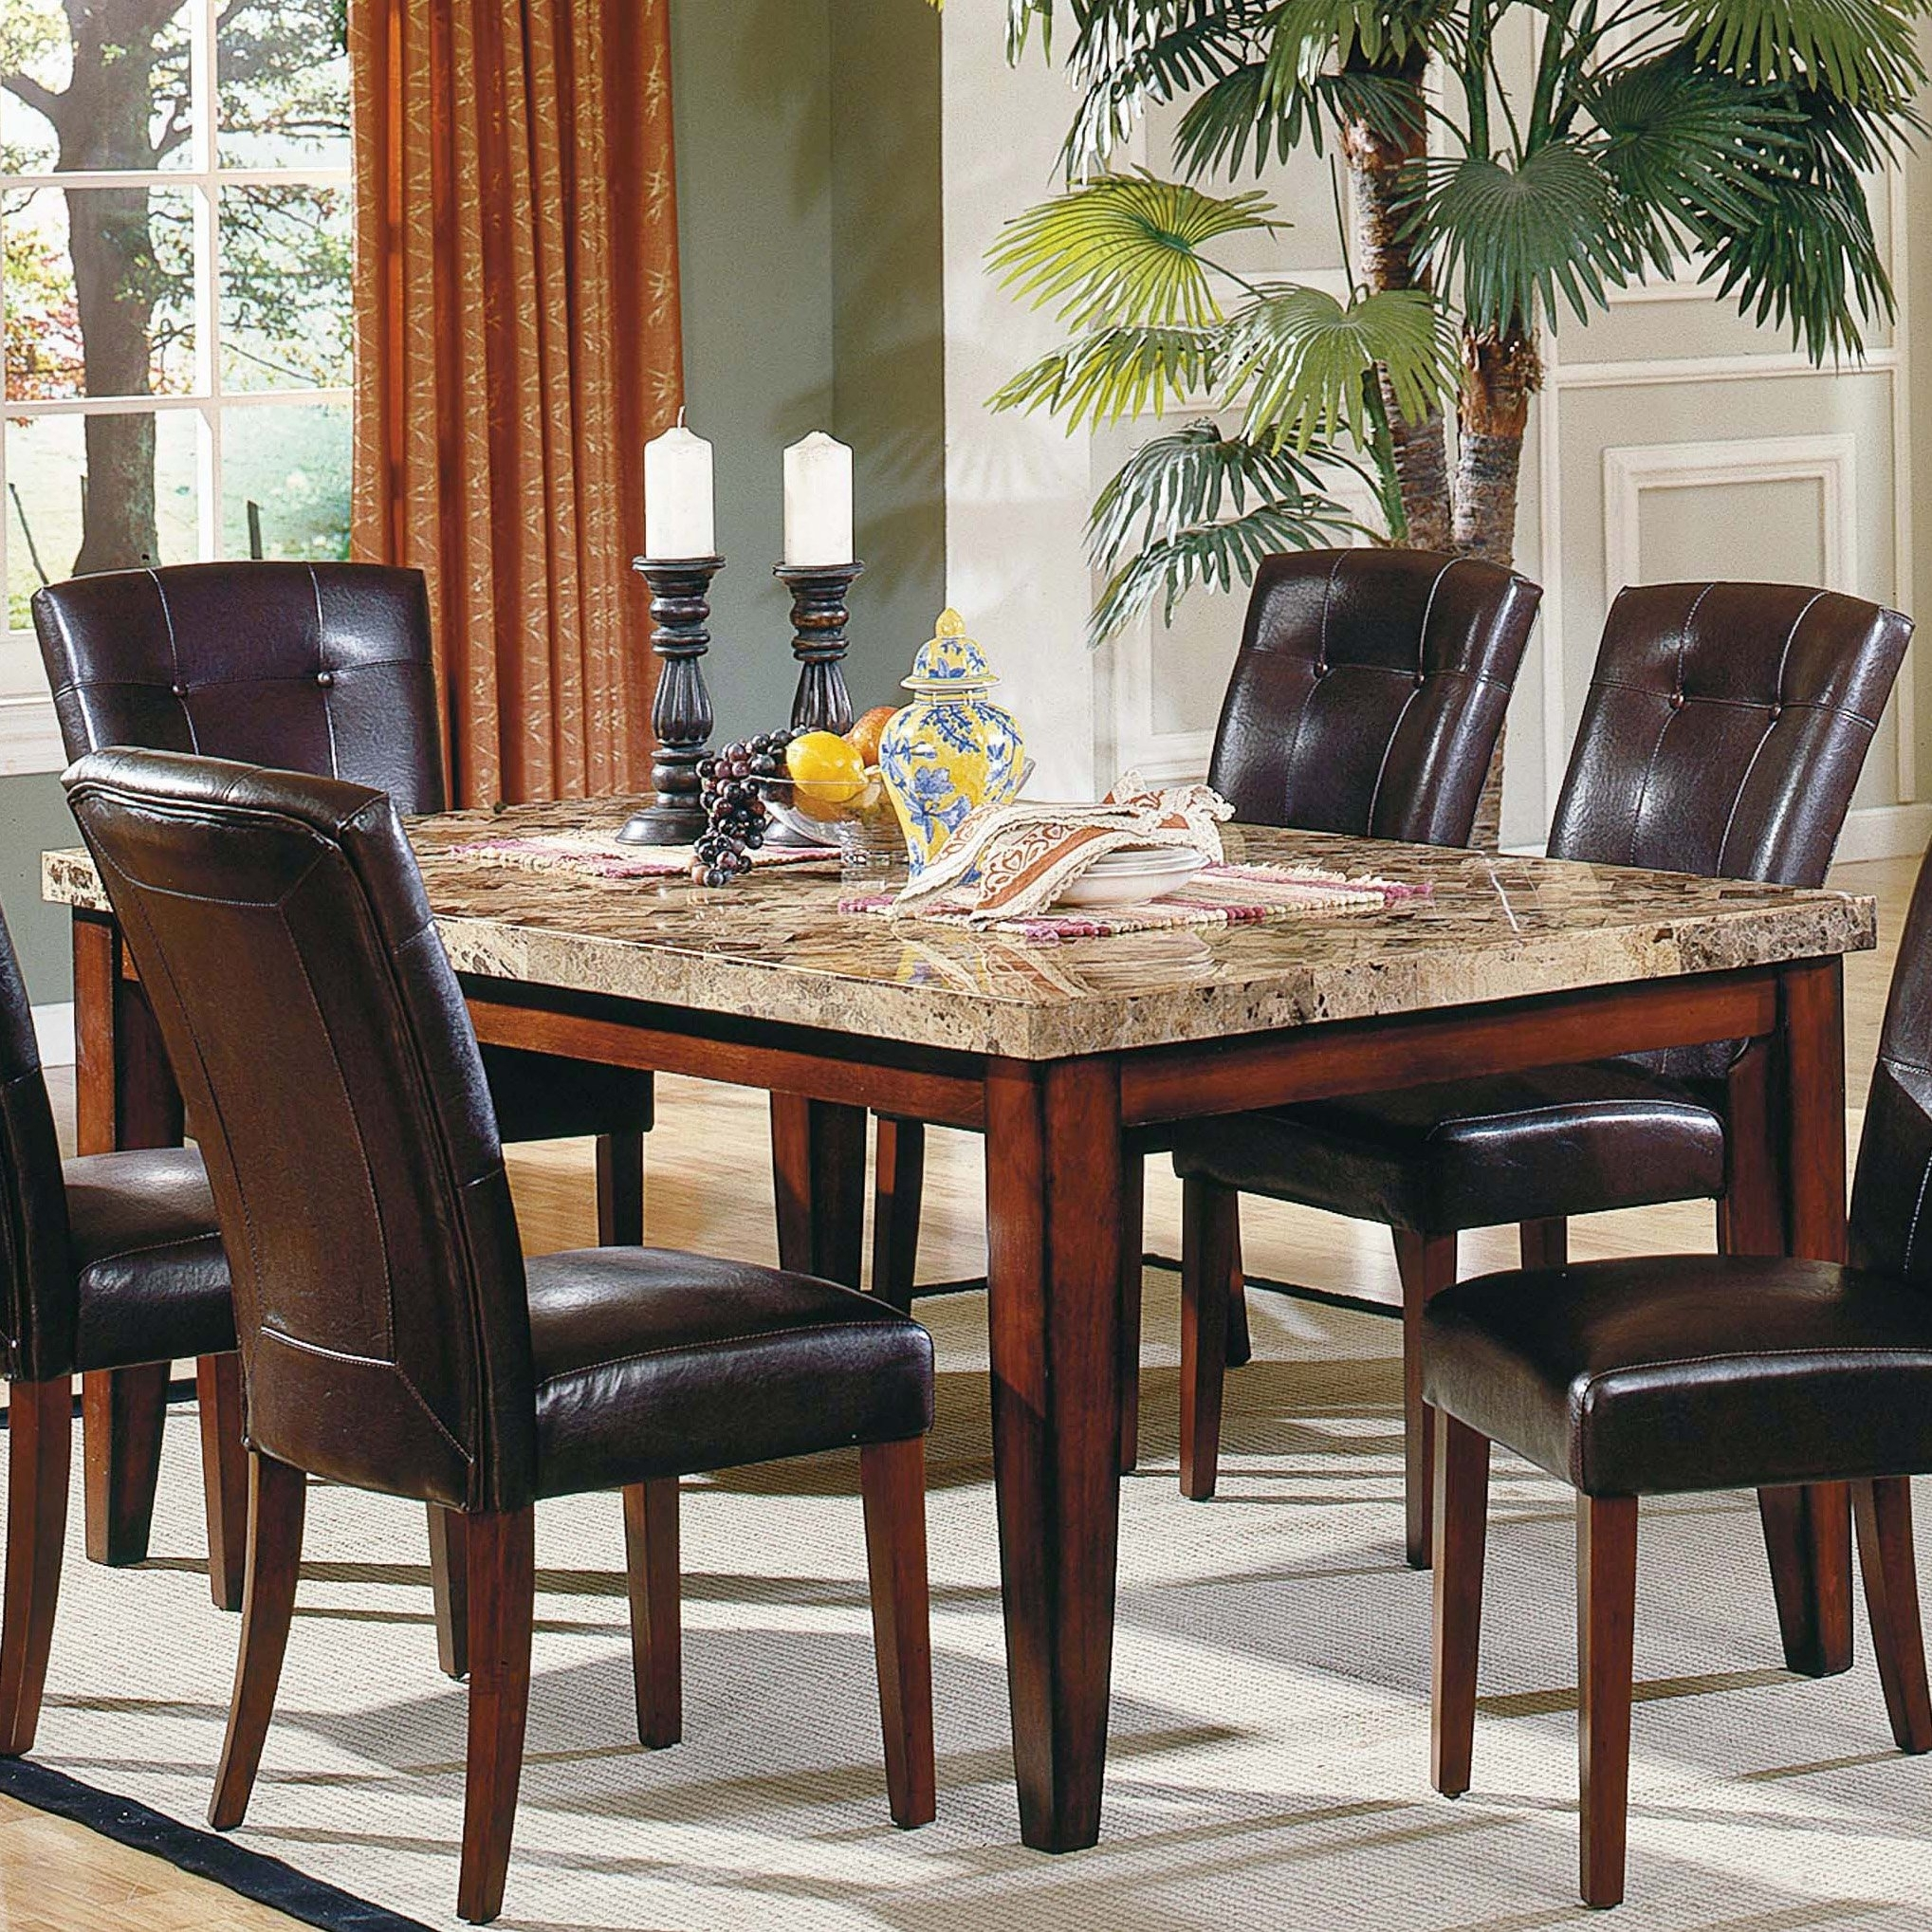 Steve Silver Montibello Marble Top Rectangular Dining Table Intended For Most Recent Palazzo 3 Piece Dining Table Sets (Image 19 of 20)